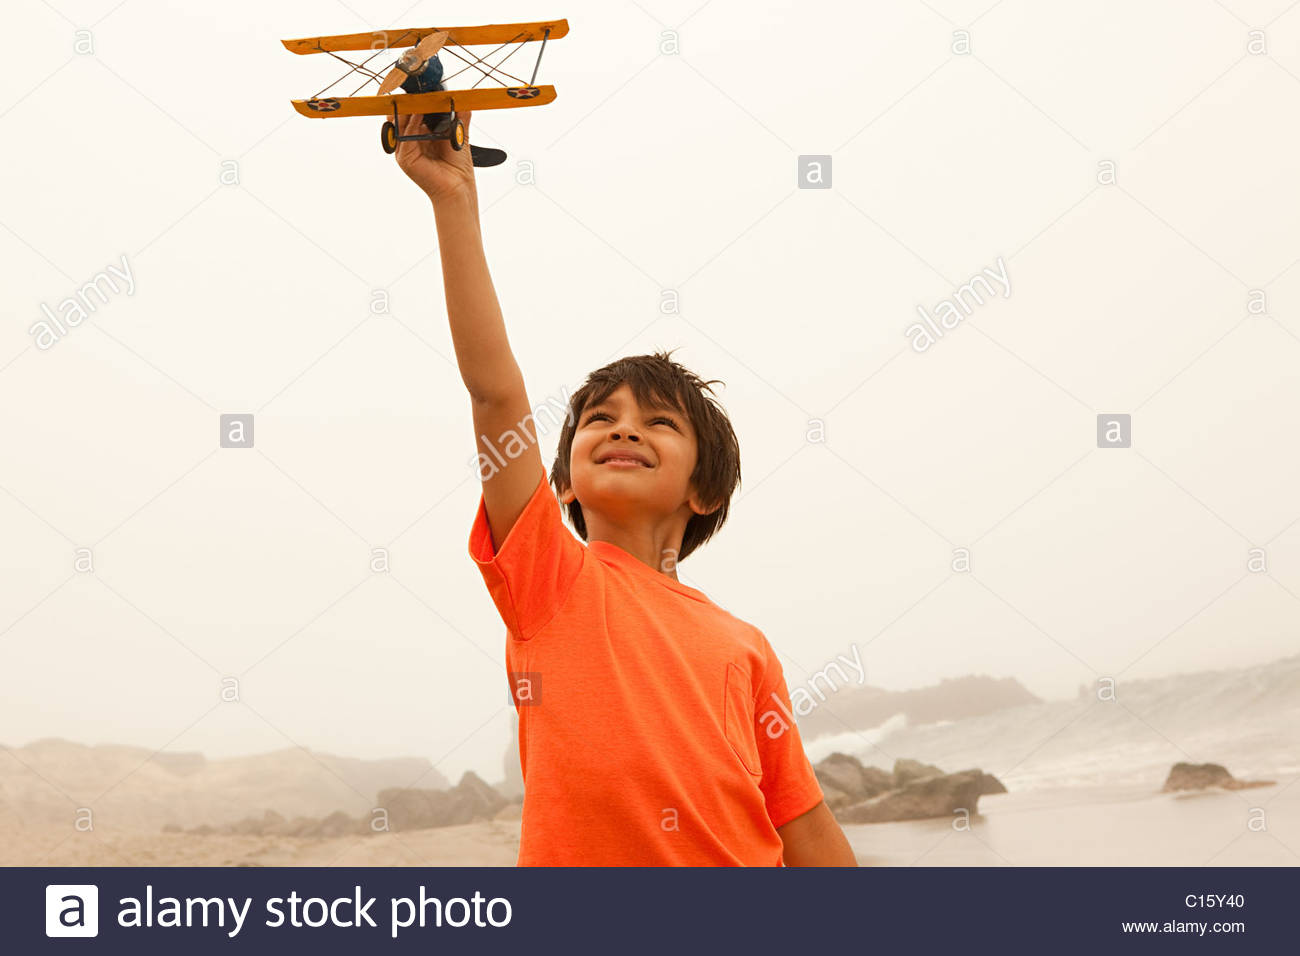 T-shirt orange boy playing with toy plane Photo Stock